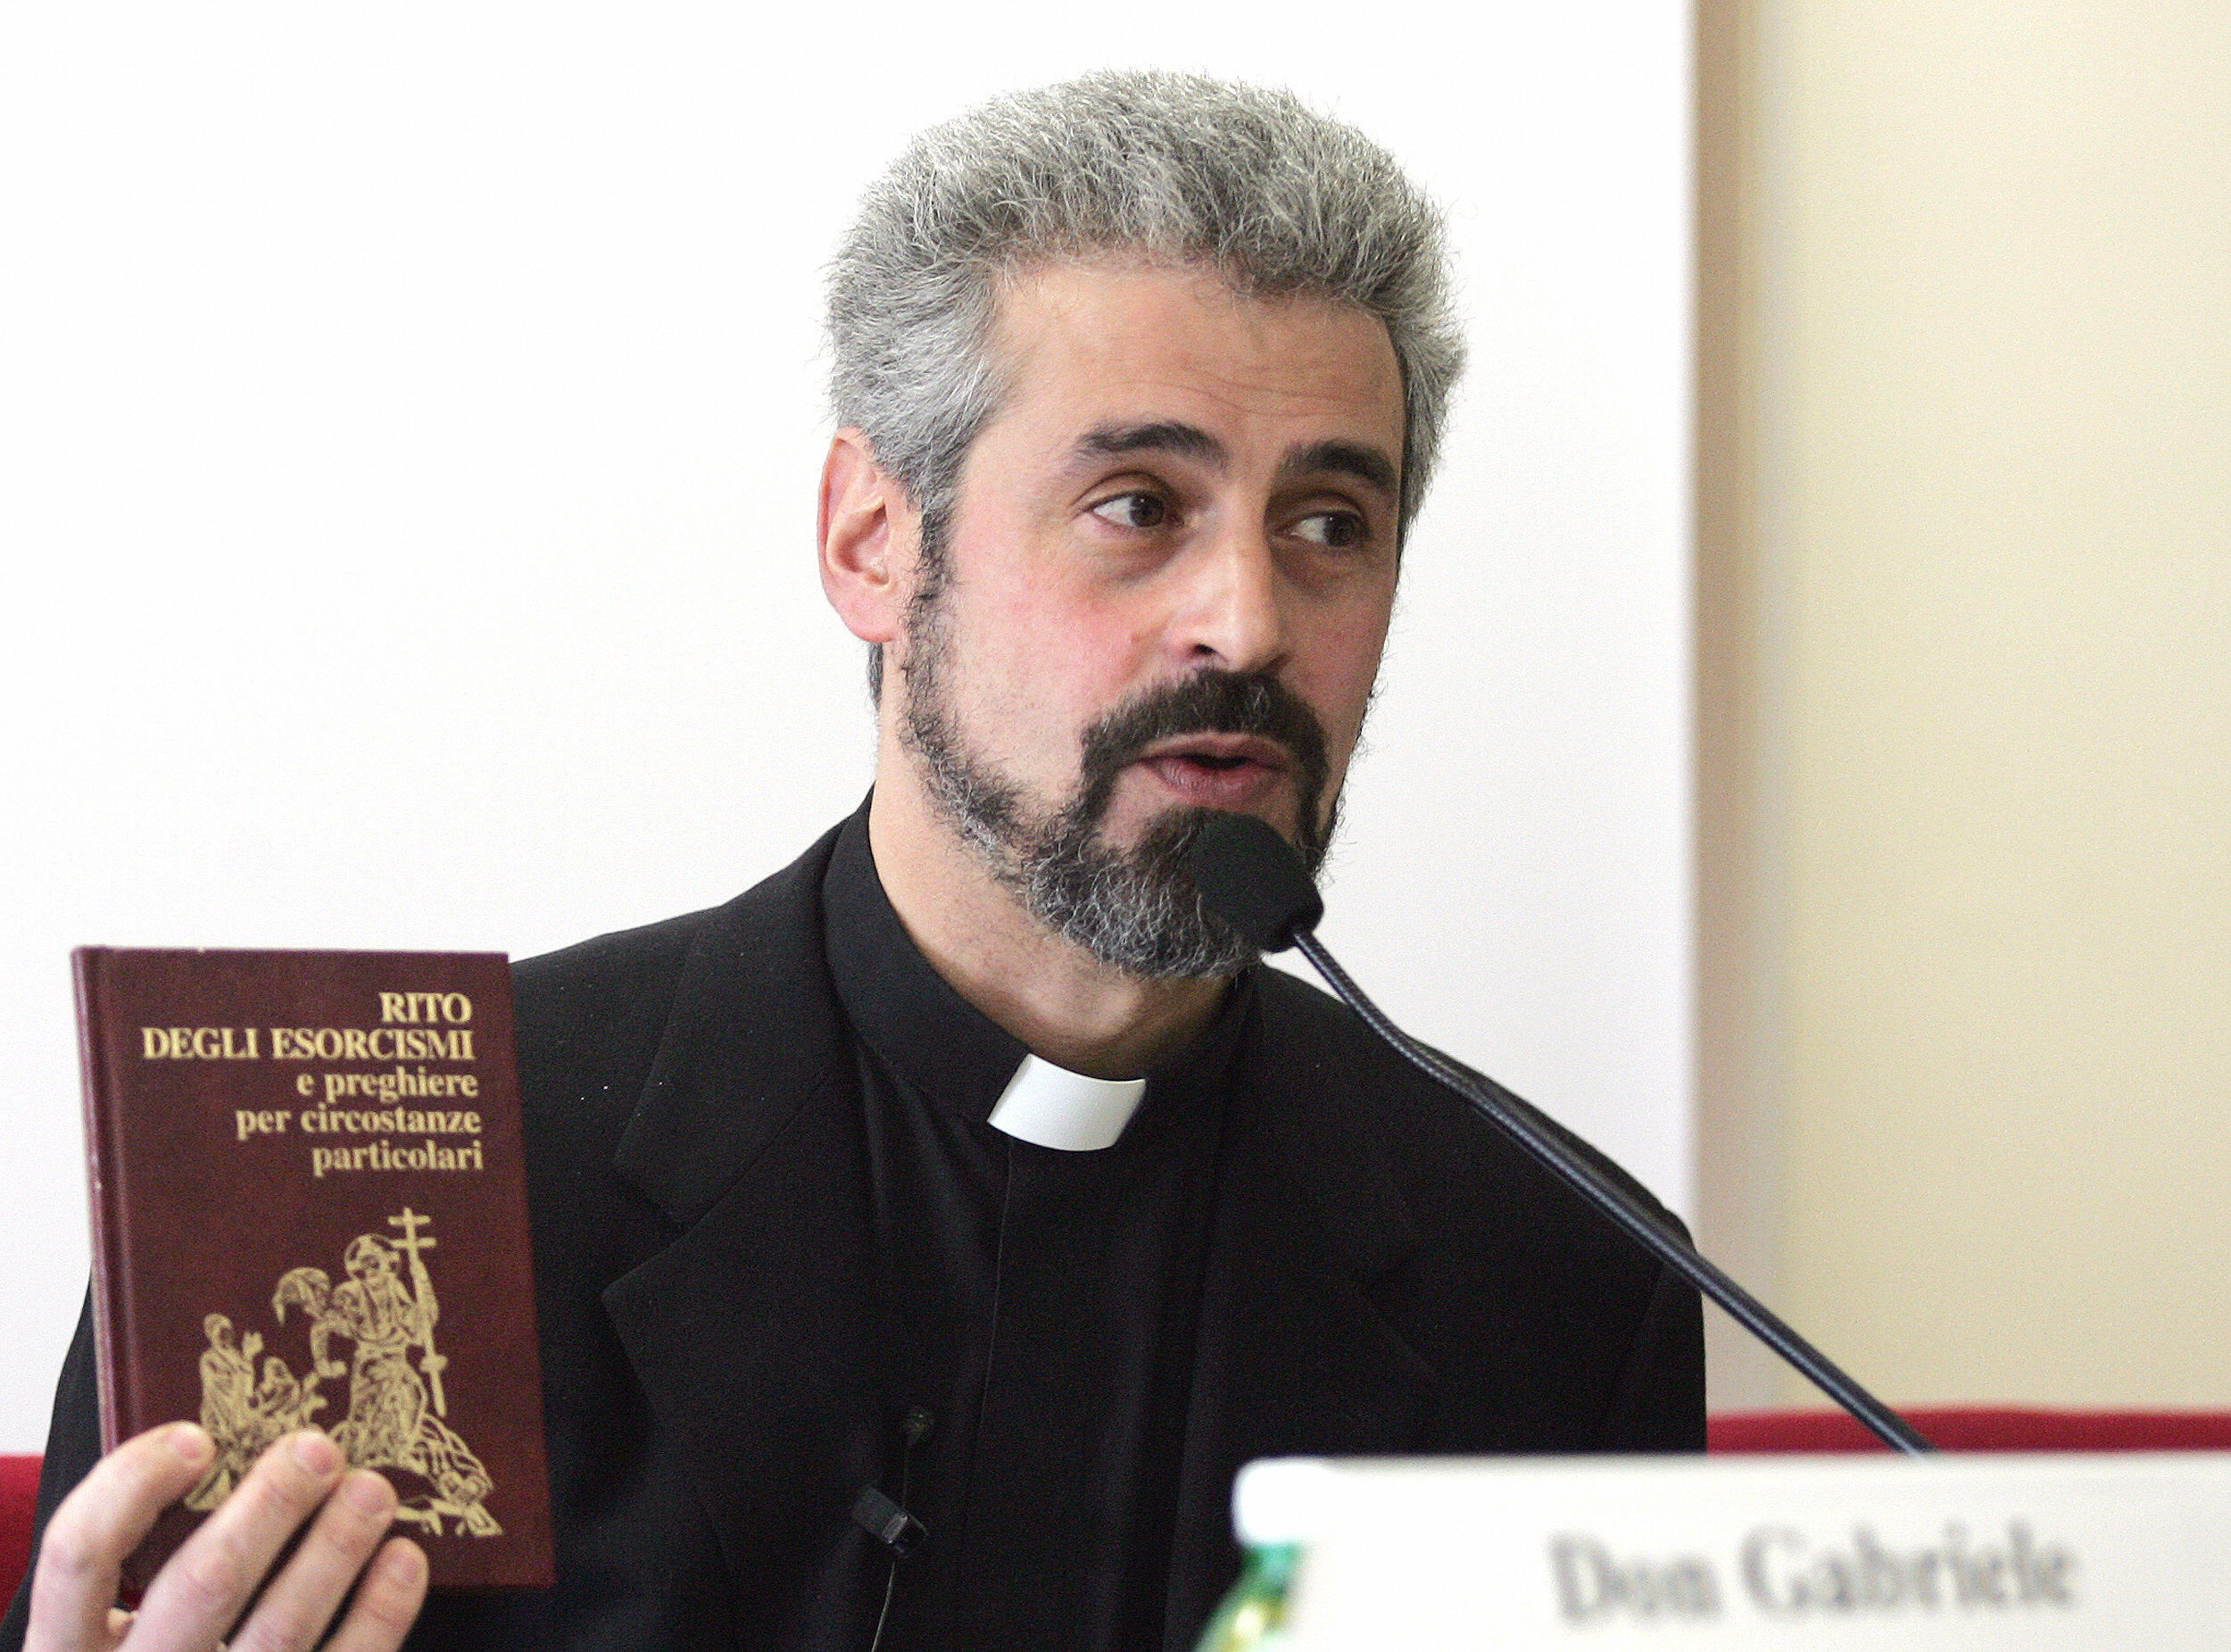 "ROME, ITALY: Father Gabriele Nanni, an official exorcist of the Roman Catholic church, holds the Catholic Church's official book of excorcism ""Rito Degli Esorcismi e preghiere per circostanze particolari"" (Rituals of exorcisms and prayers for specific circumstances) during his lesson at the Regina Apostolorum pontifical university in Rome 17 February 2005. Around one hundred priests today attended the first lesson on satanism and exorcism at the Vatican-linked Regina Apostolorum university. (ALBERTO PIZZOLI/AFP/Getty Images)"